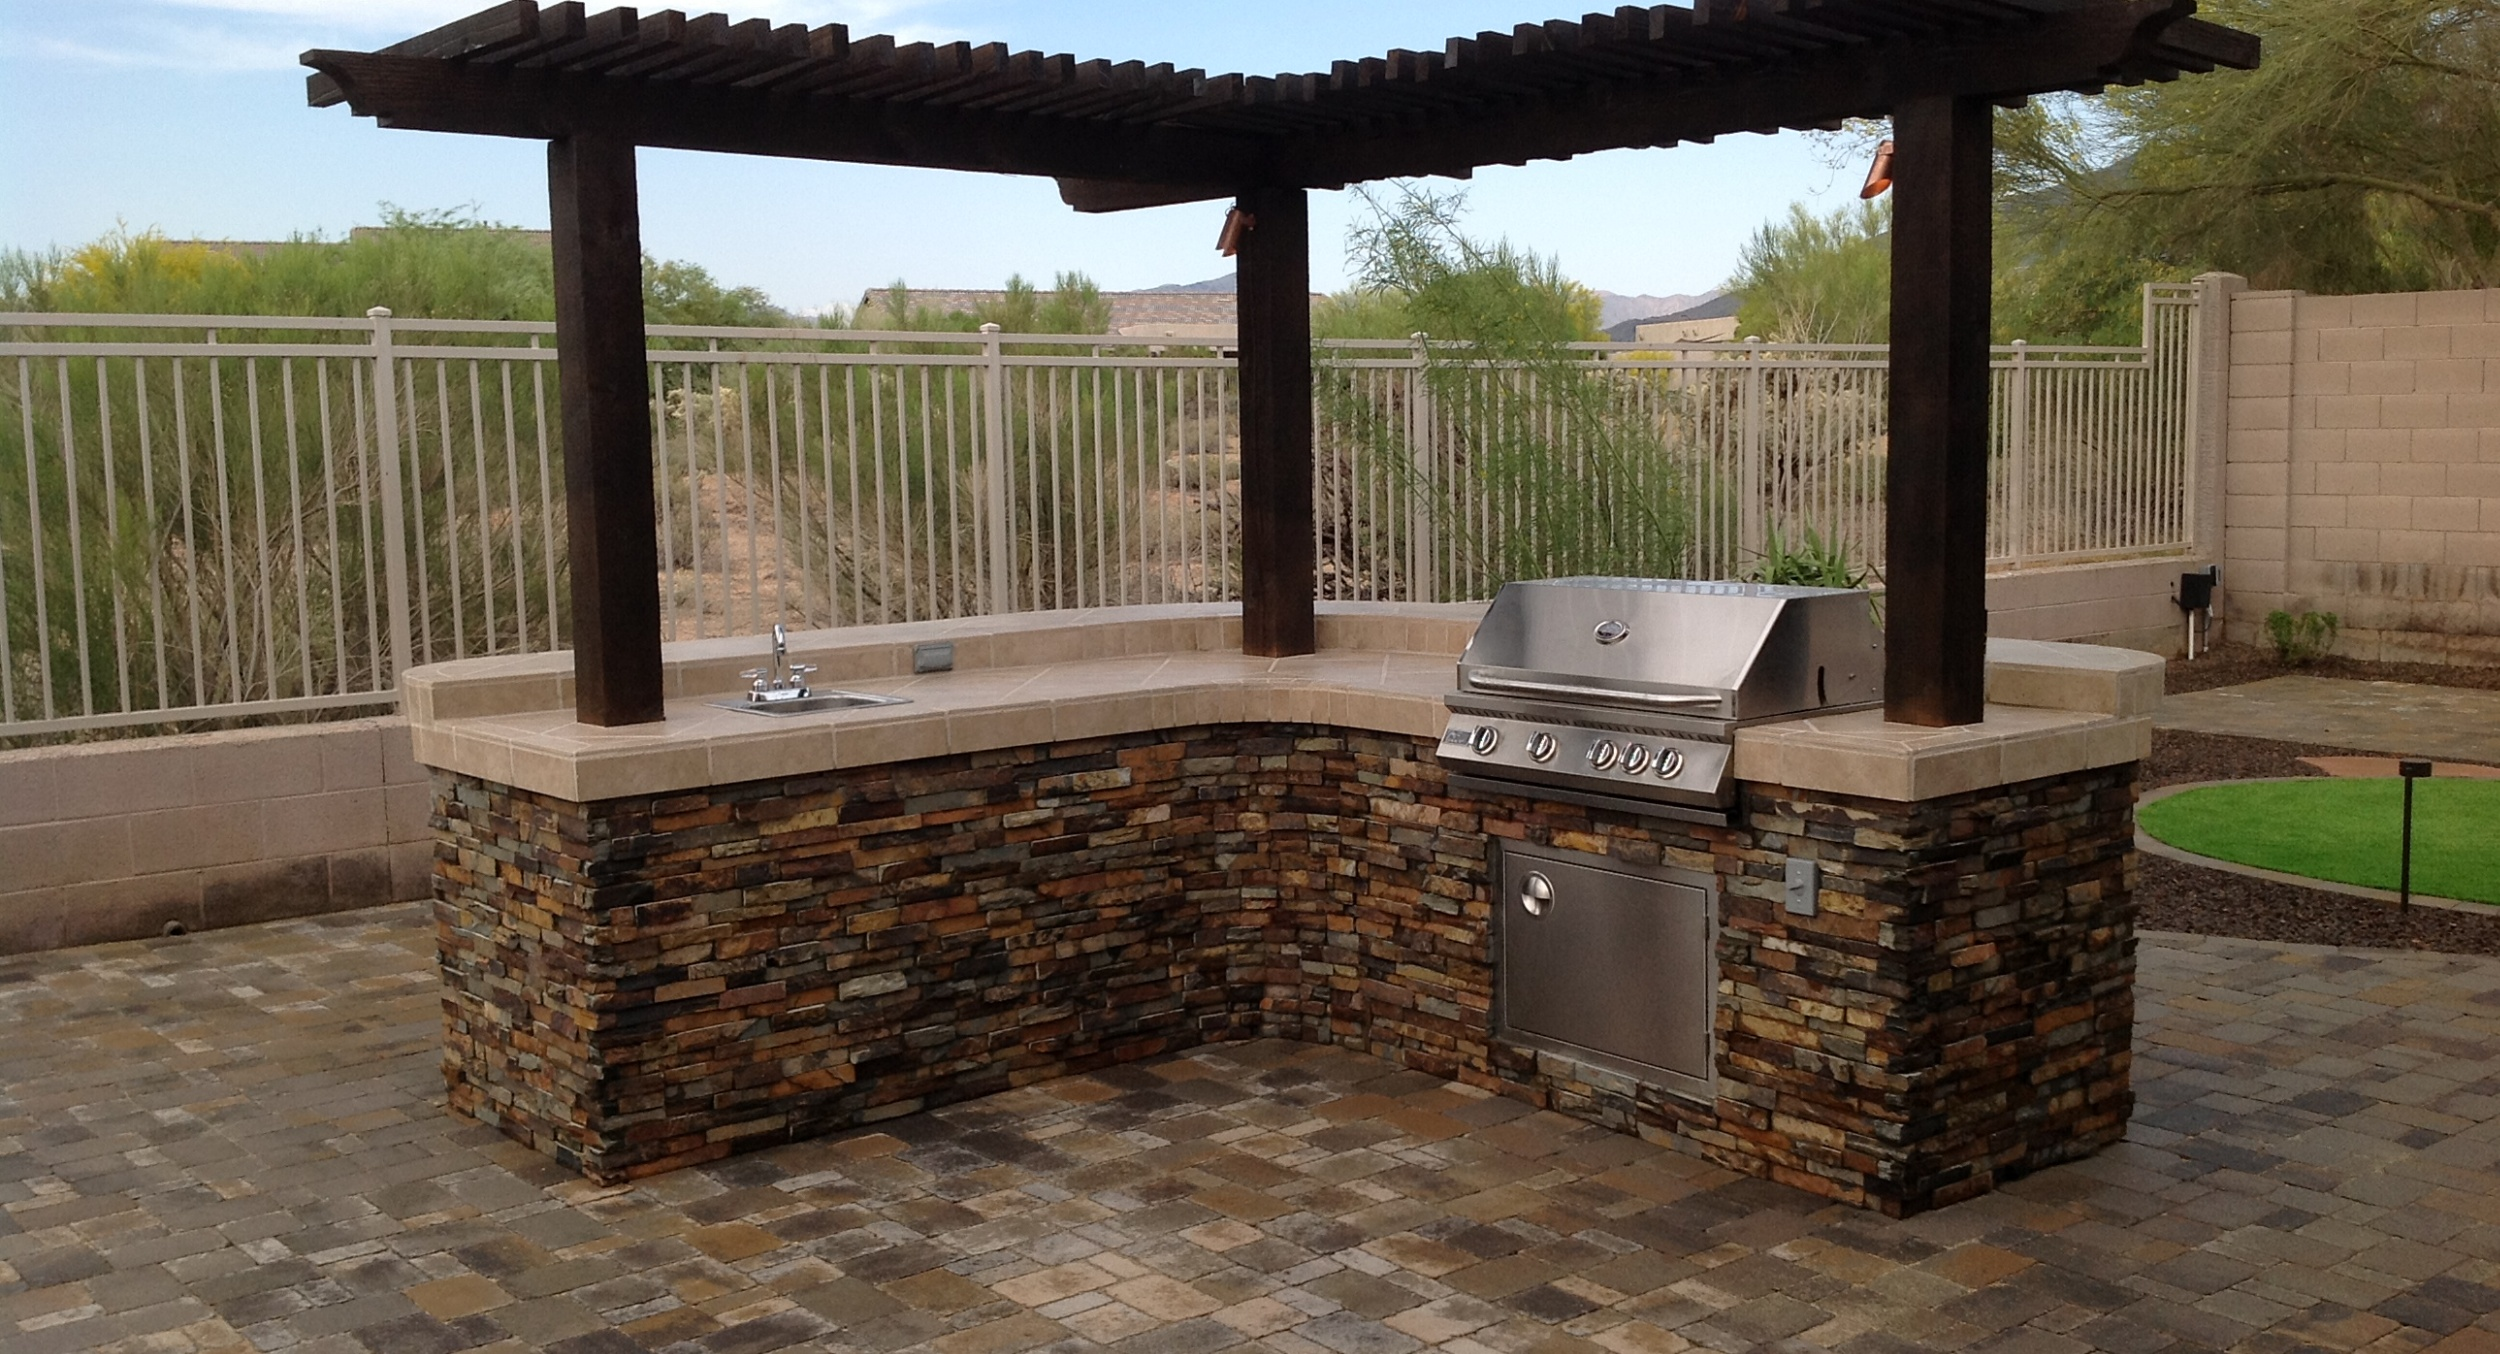 This lovely Cave Creek landscape design: has a very unique stone and tile built-in grill with a bar on the new paver patio. The island has its own attached shade pergola made from dark wood.